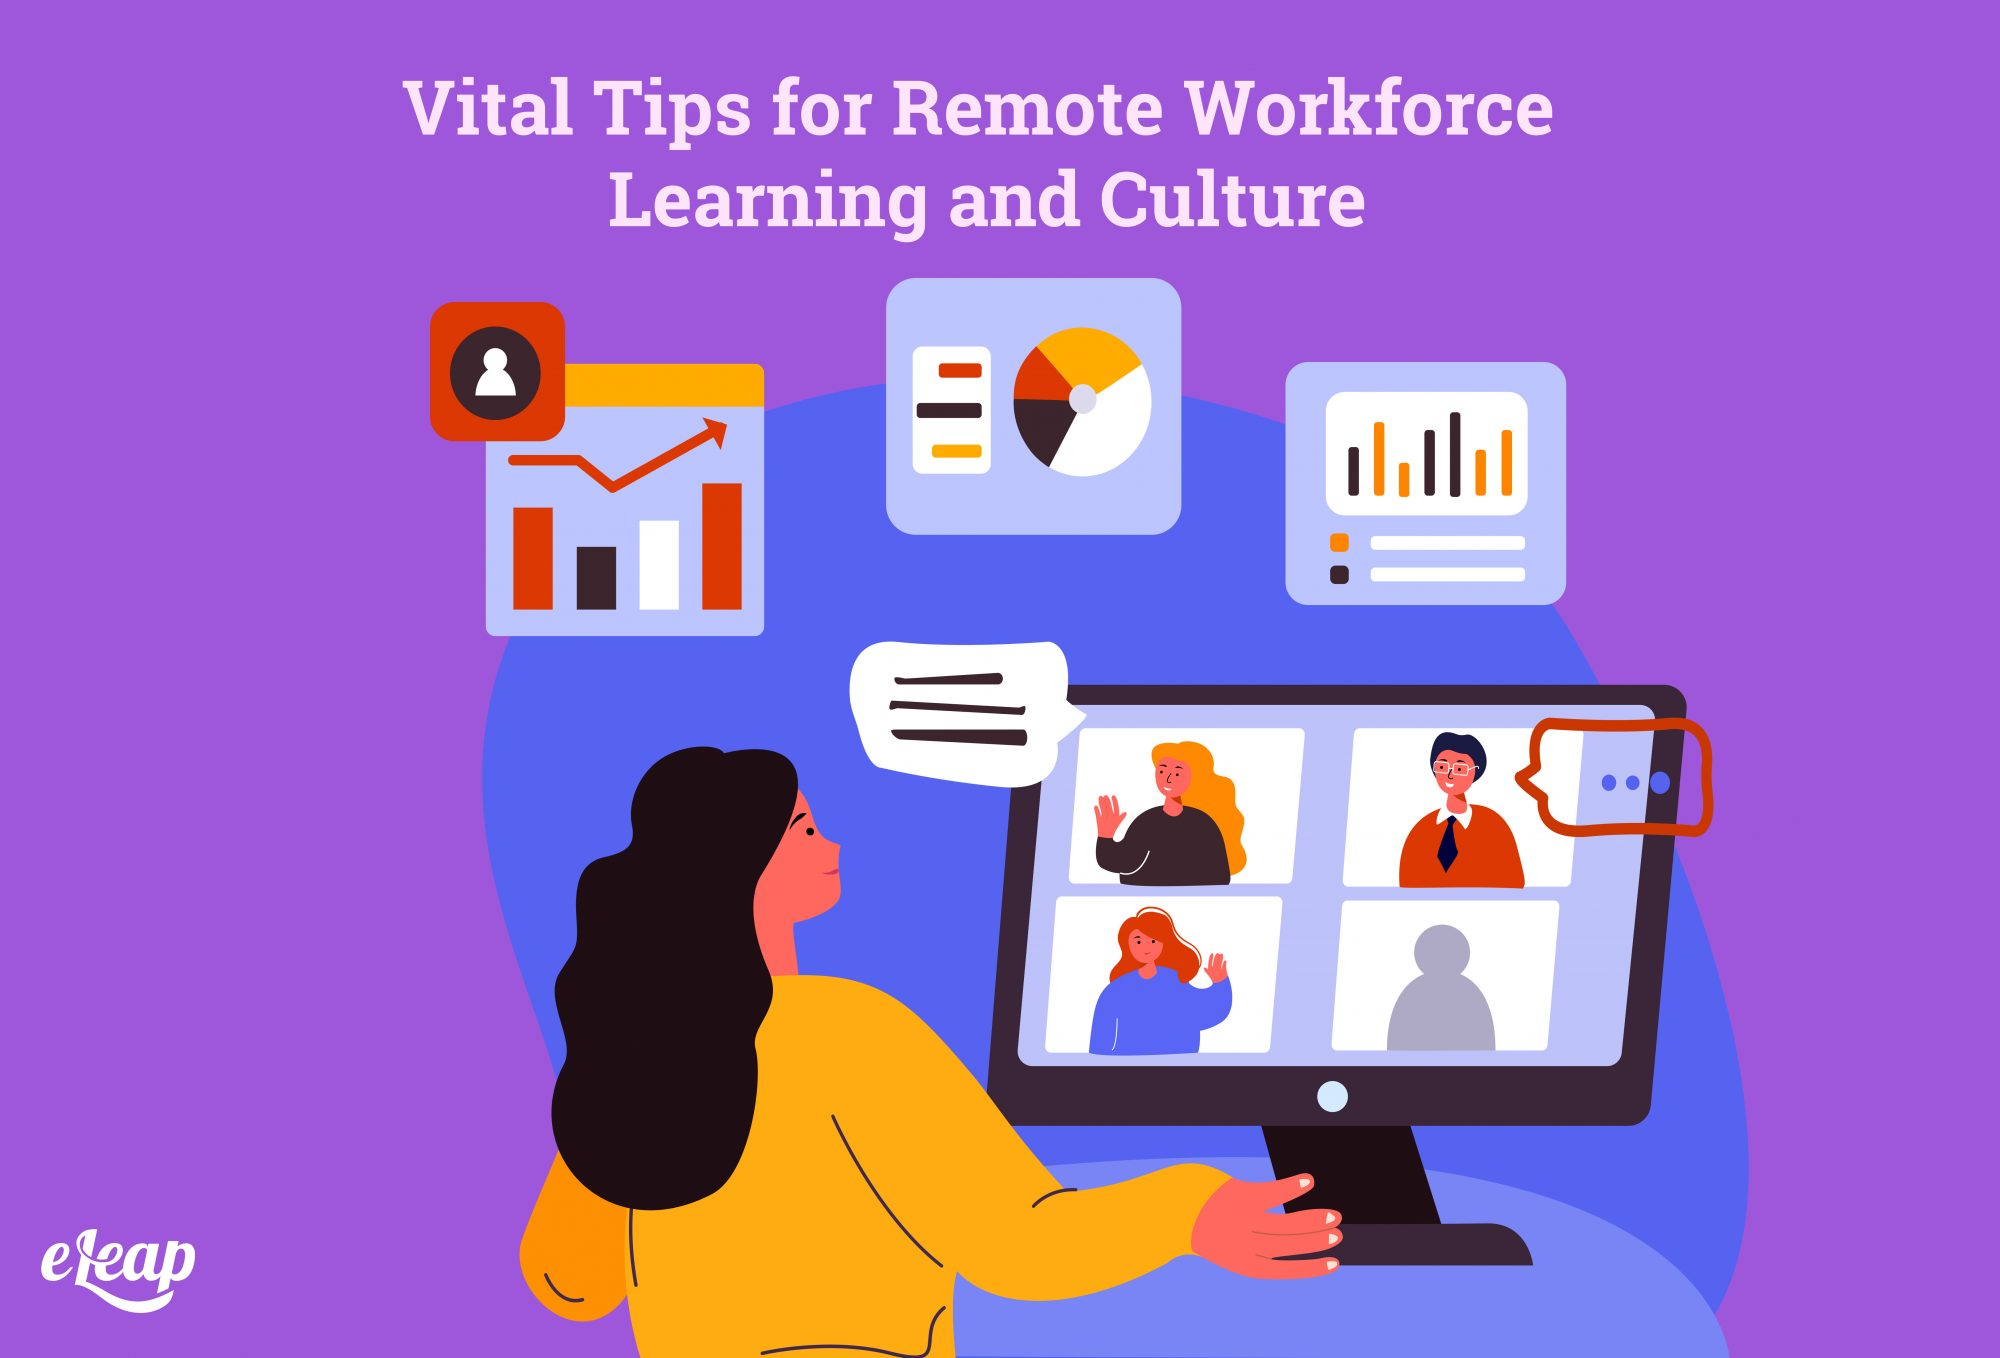 Vital Tips for Remote Workforce Learning and Culture